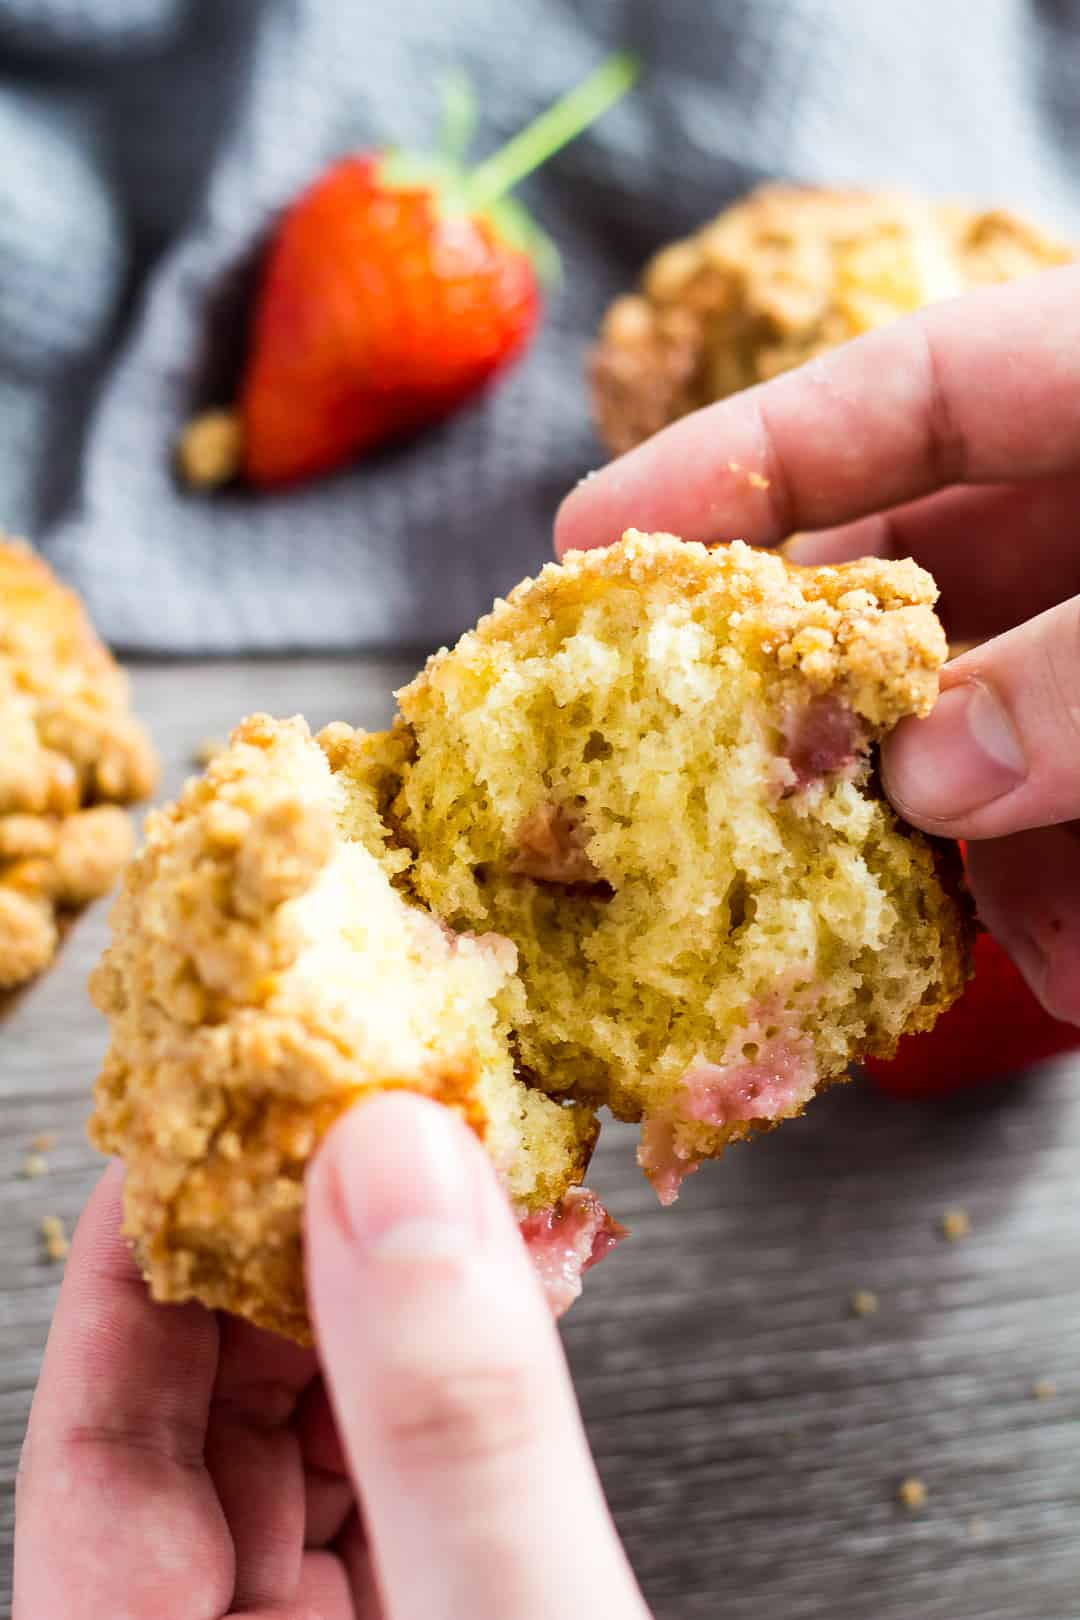 A Strawberry Crumb Muffin being pulled apart by hand.